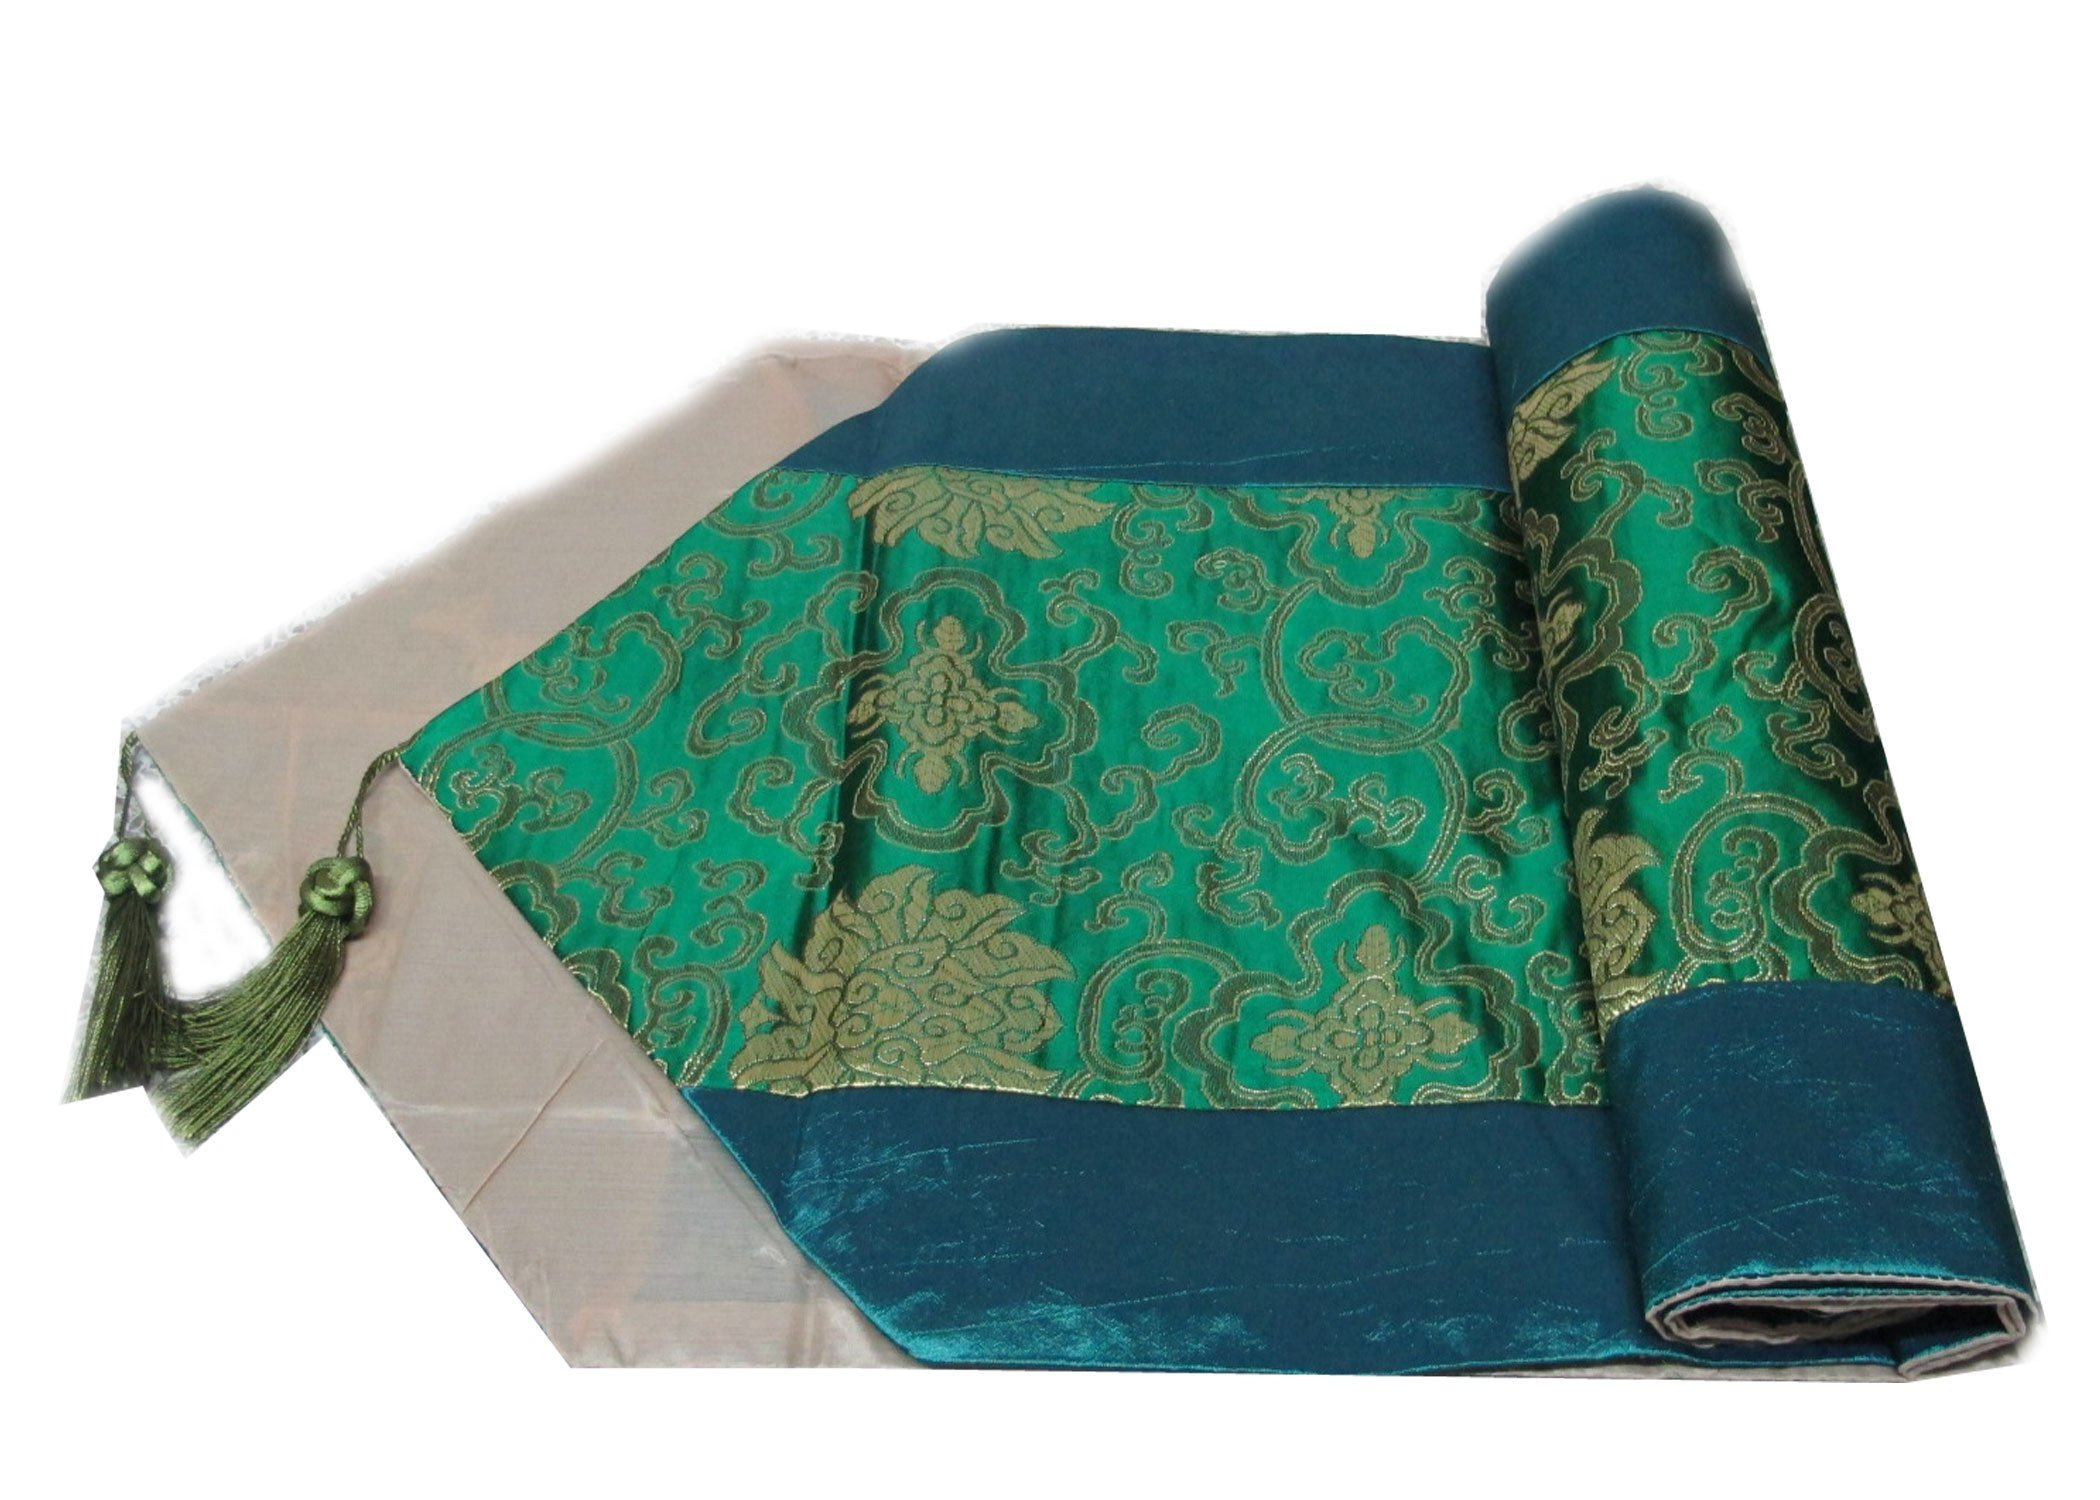 So Beautiful Flower Thai Silk Table/bed Runner 13 Inches X 76 Inches By Handmade Buy a Set of Bed Runner Get One Free Thai Silk Clutch Wallet